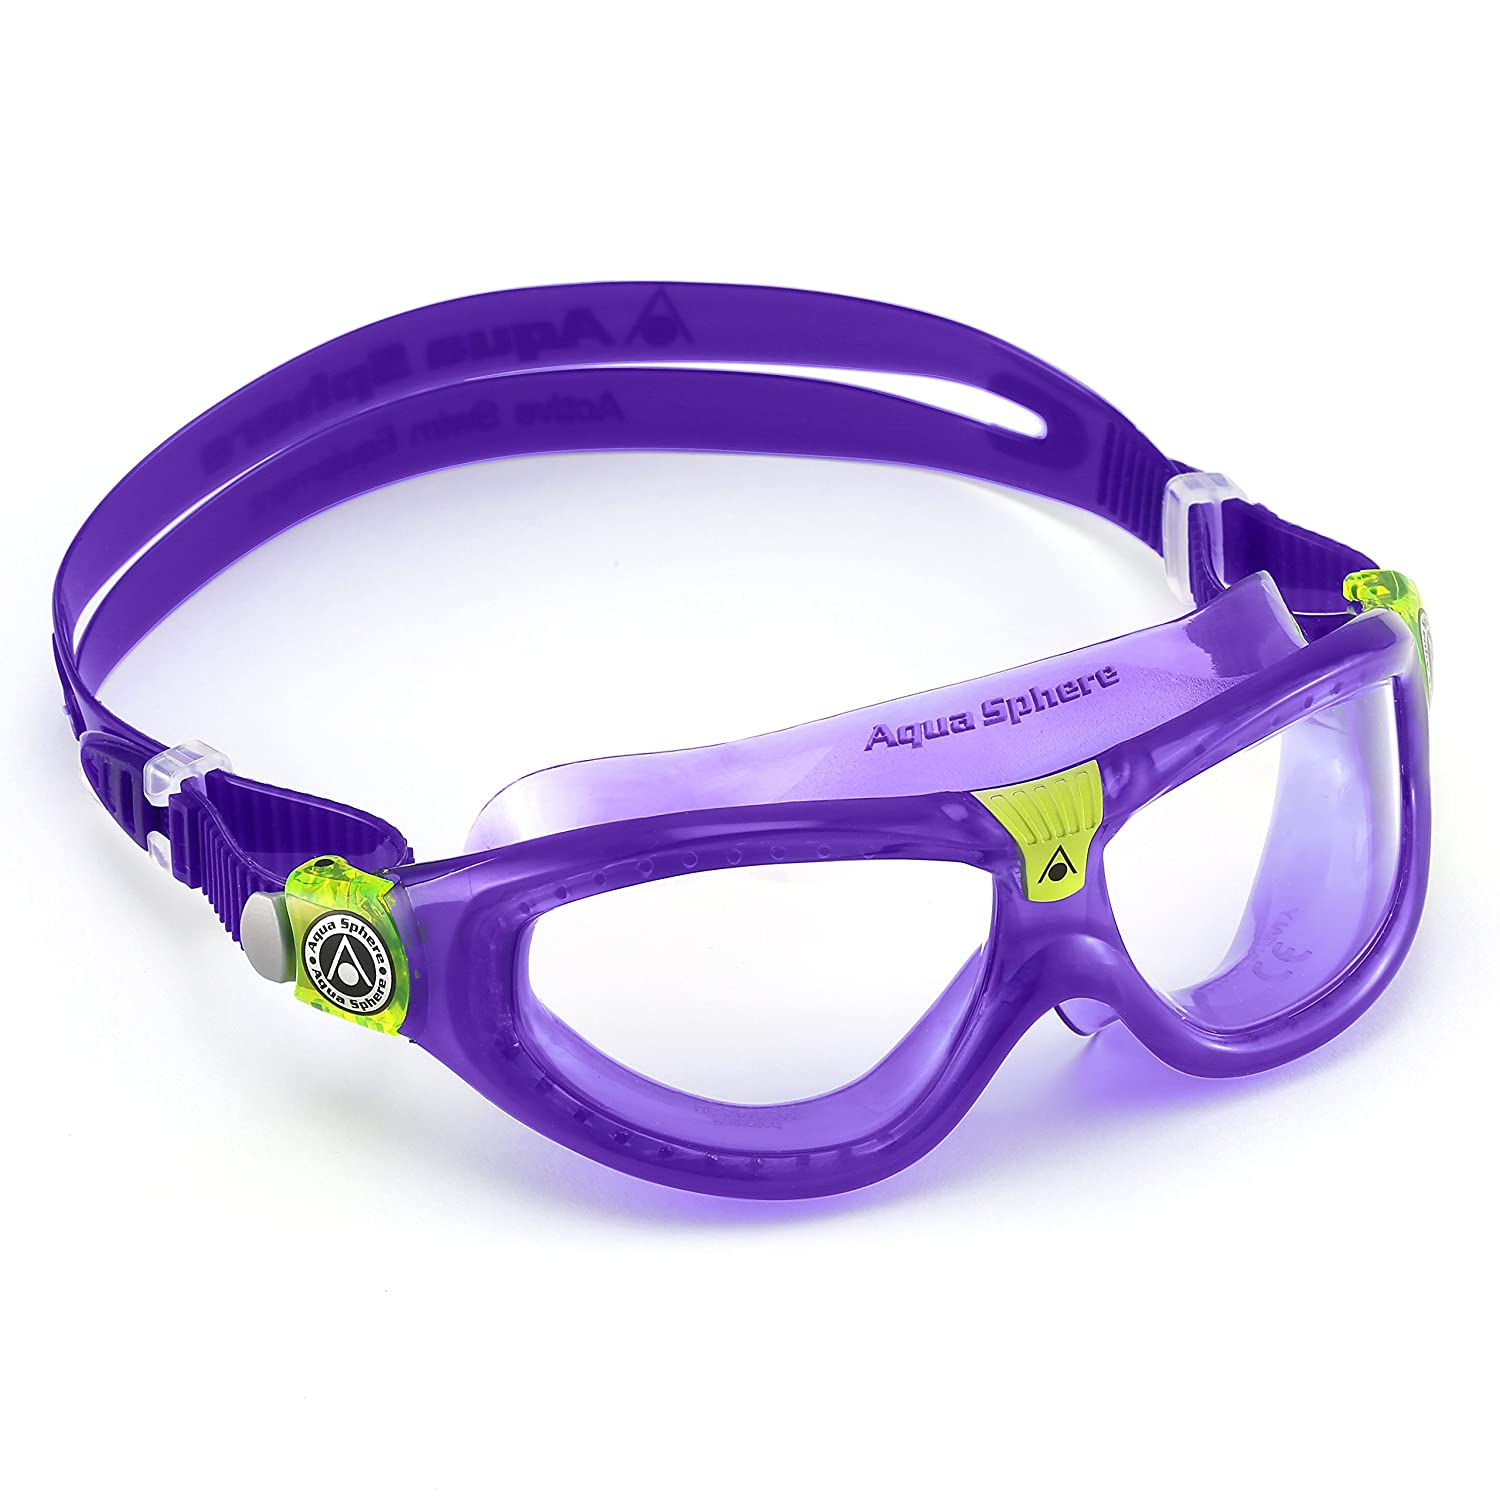 808e01f816 Aqua Sphere Seal Kids 2 - Violet   Clear (Old Version)  Amazon.co.uk   Sports   Outdoors